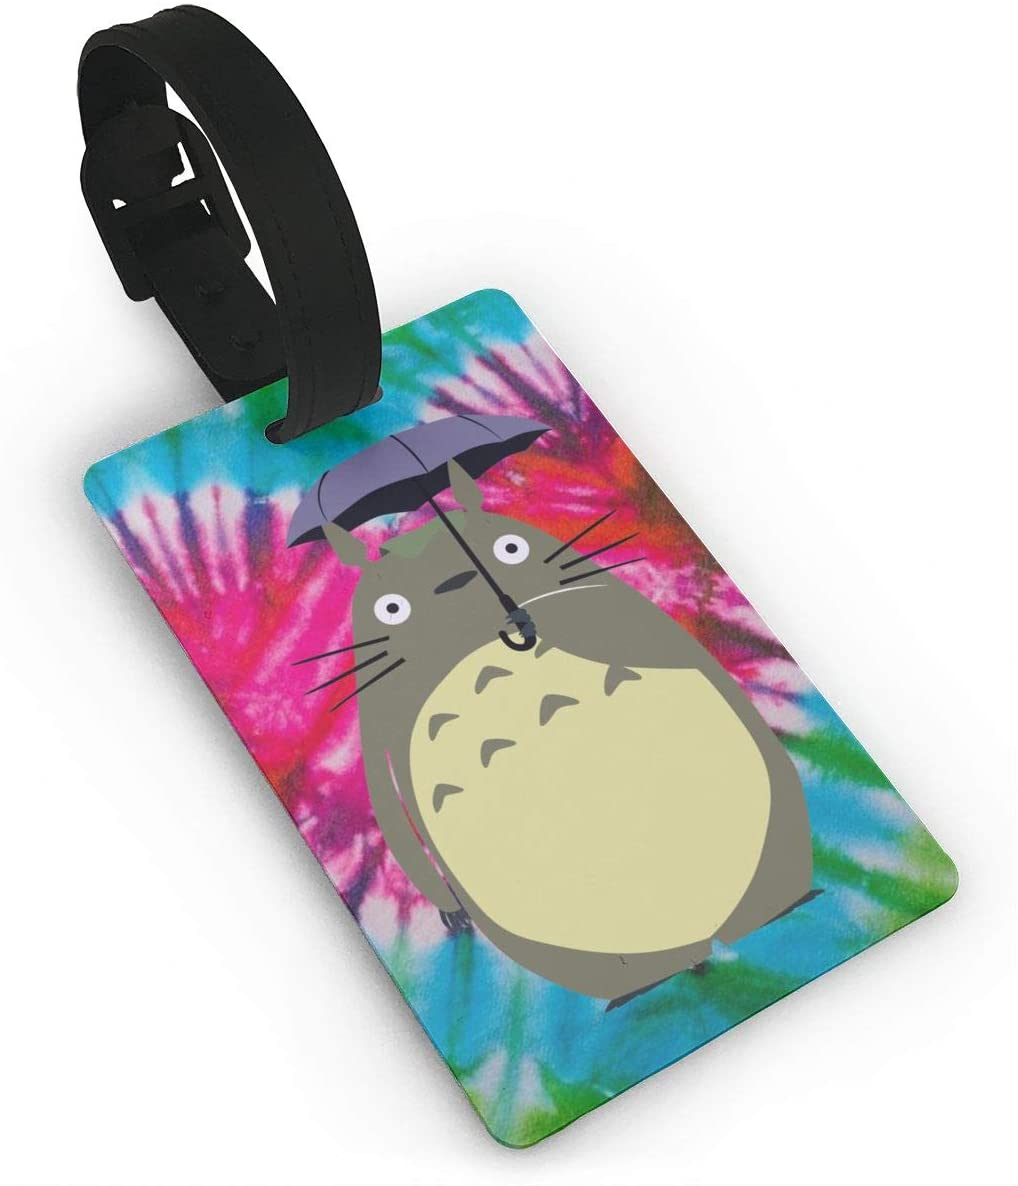 Totoro Luggage Id Tags Cruise Instrument Bag Case Suitcase Carry-On Cards Travel Accessories